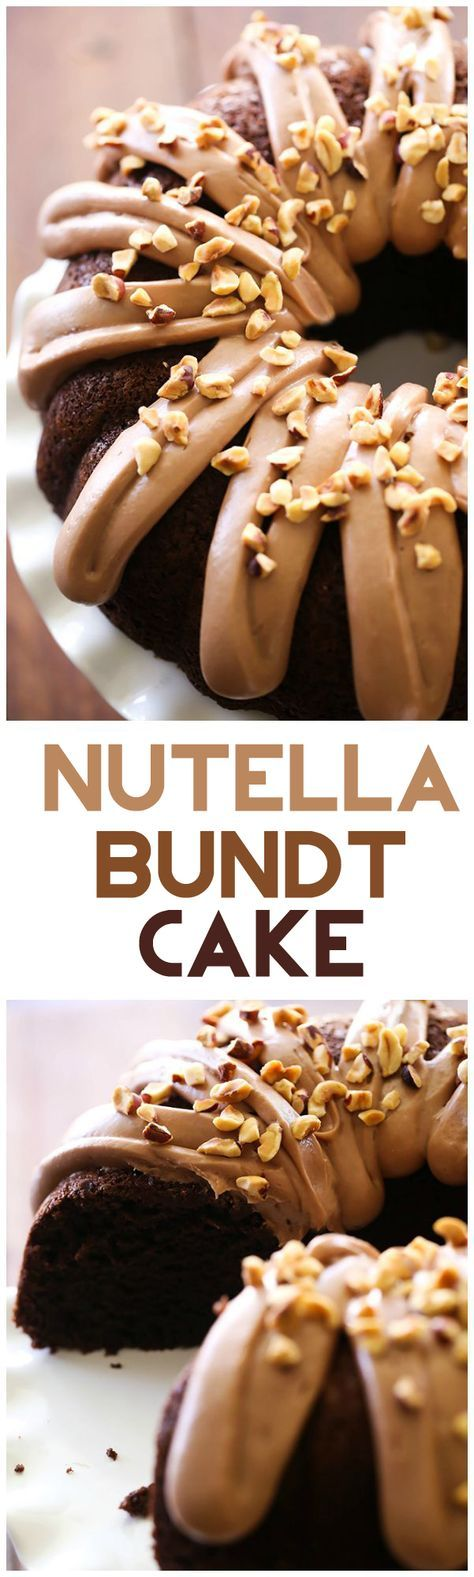 Nutella Bundt Cake Nutella Bundt Cake... This Cake is beyond moist and delicious! It is a chocolate-lovers dream!